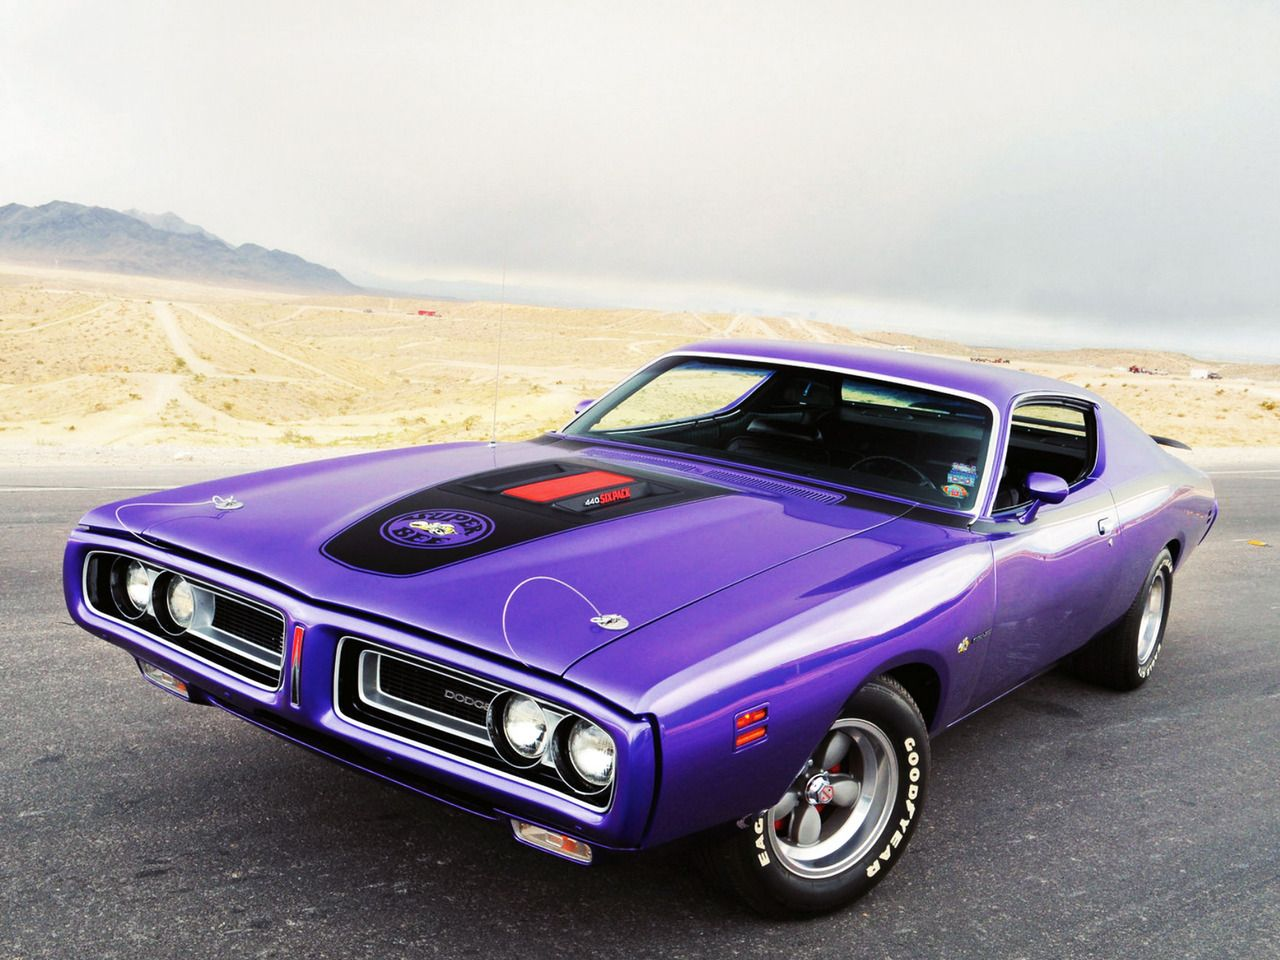 71 Charger Superbee In Fc7 Plum Crazy Purple Or In Plymouth Terms In Voilet Dodge Charger Super Bee 1971 Dodge Charger Dodge Charger